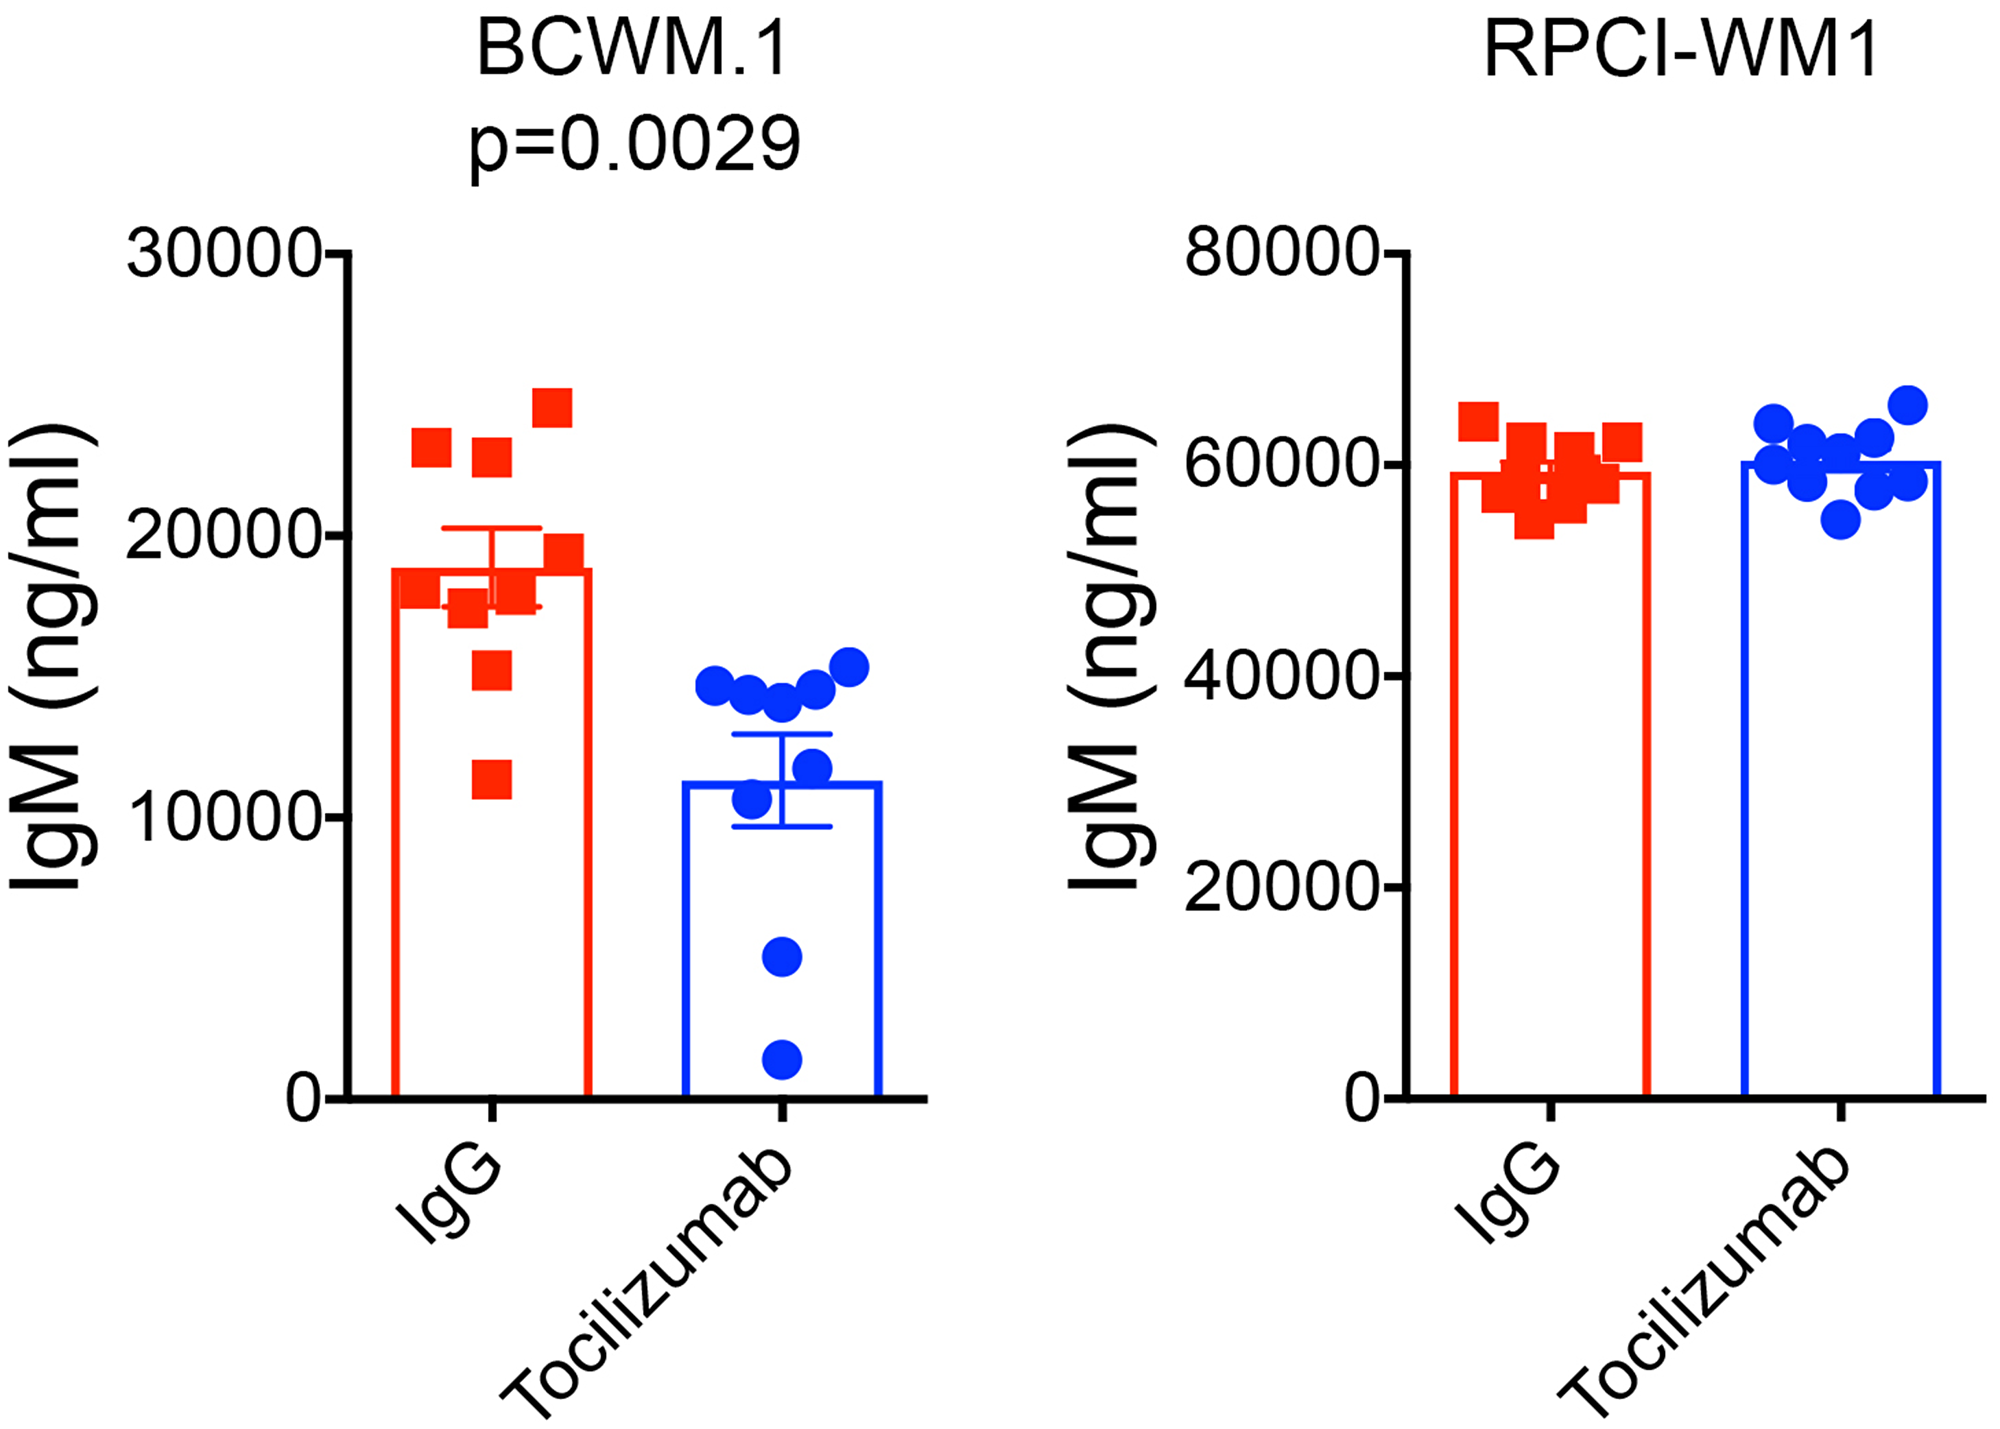 Tocilizumab reduces human IgM secretion in mice xenografted with BCWM.1 cells and stromal cells.